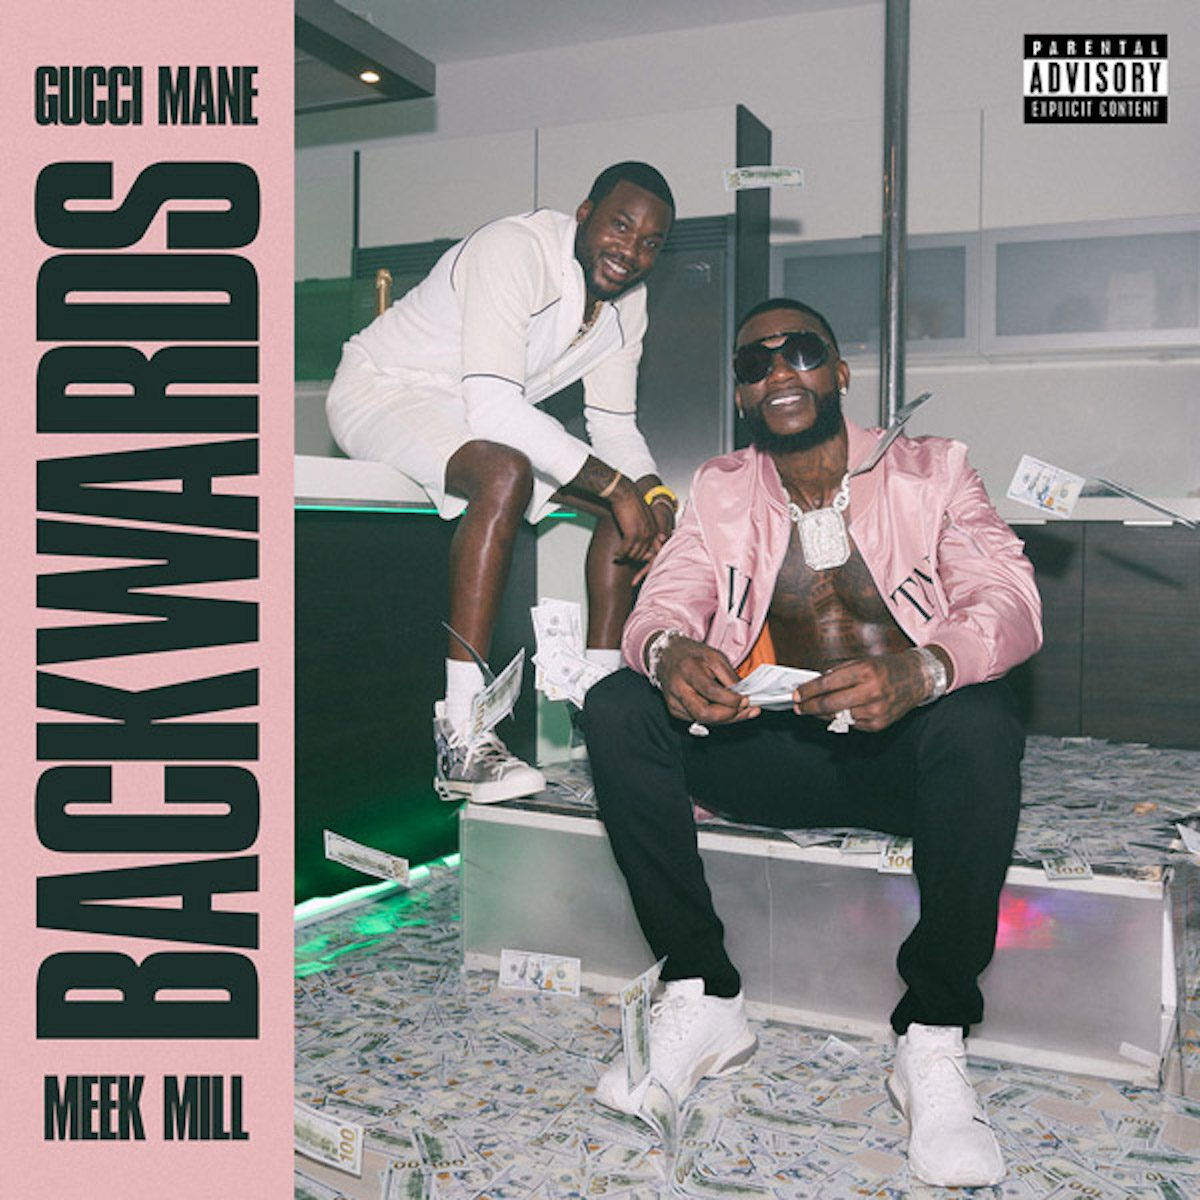 Gucci Mane and Meek Mill Backwards